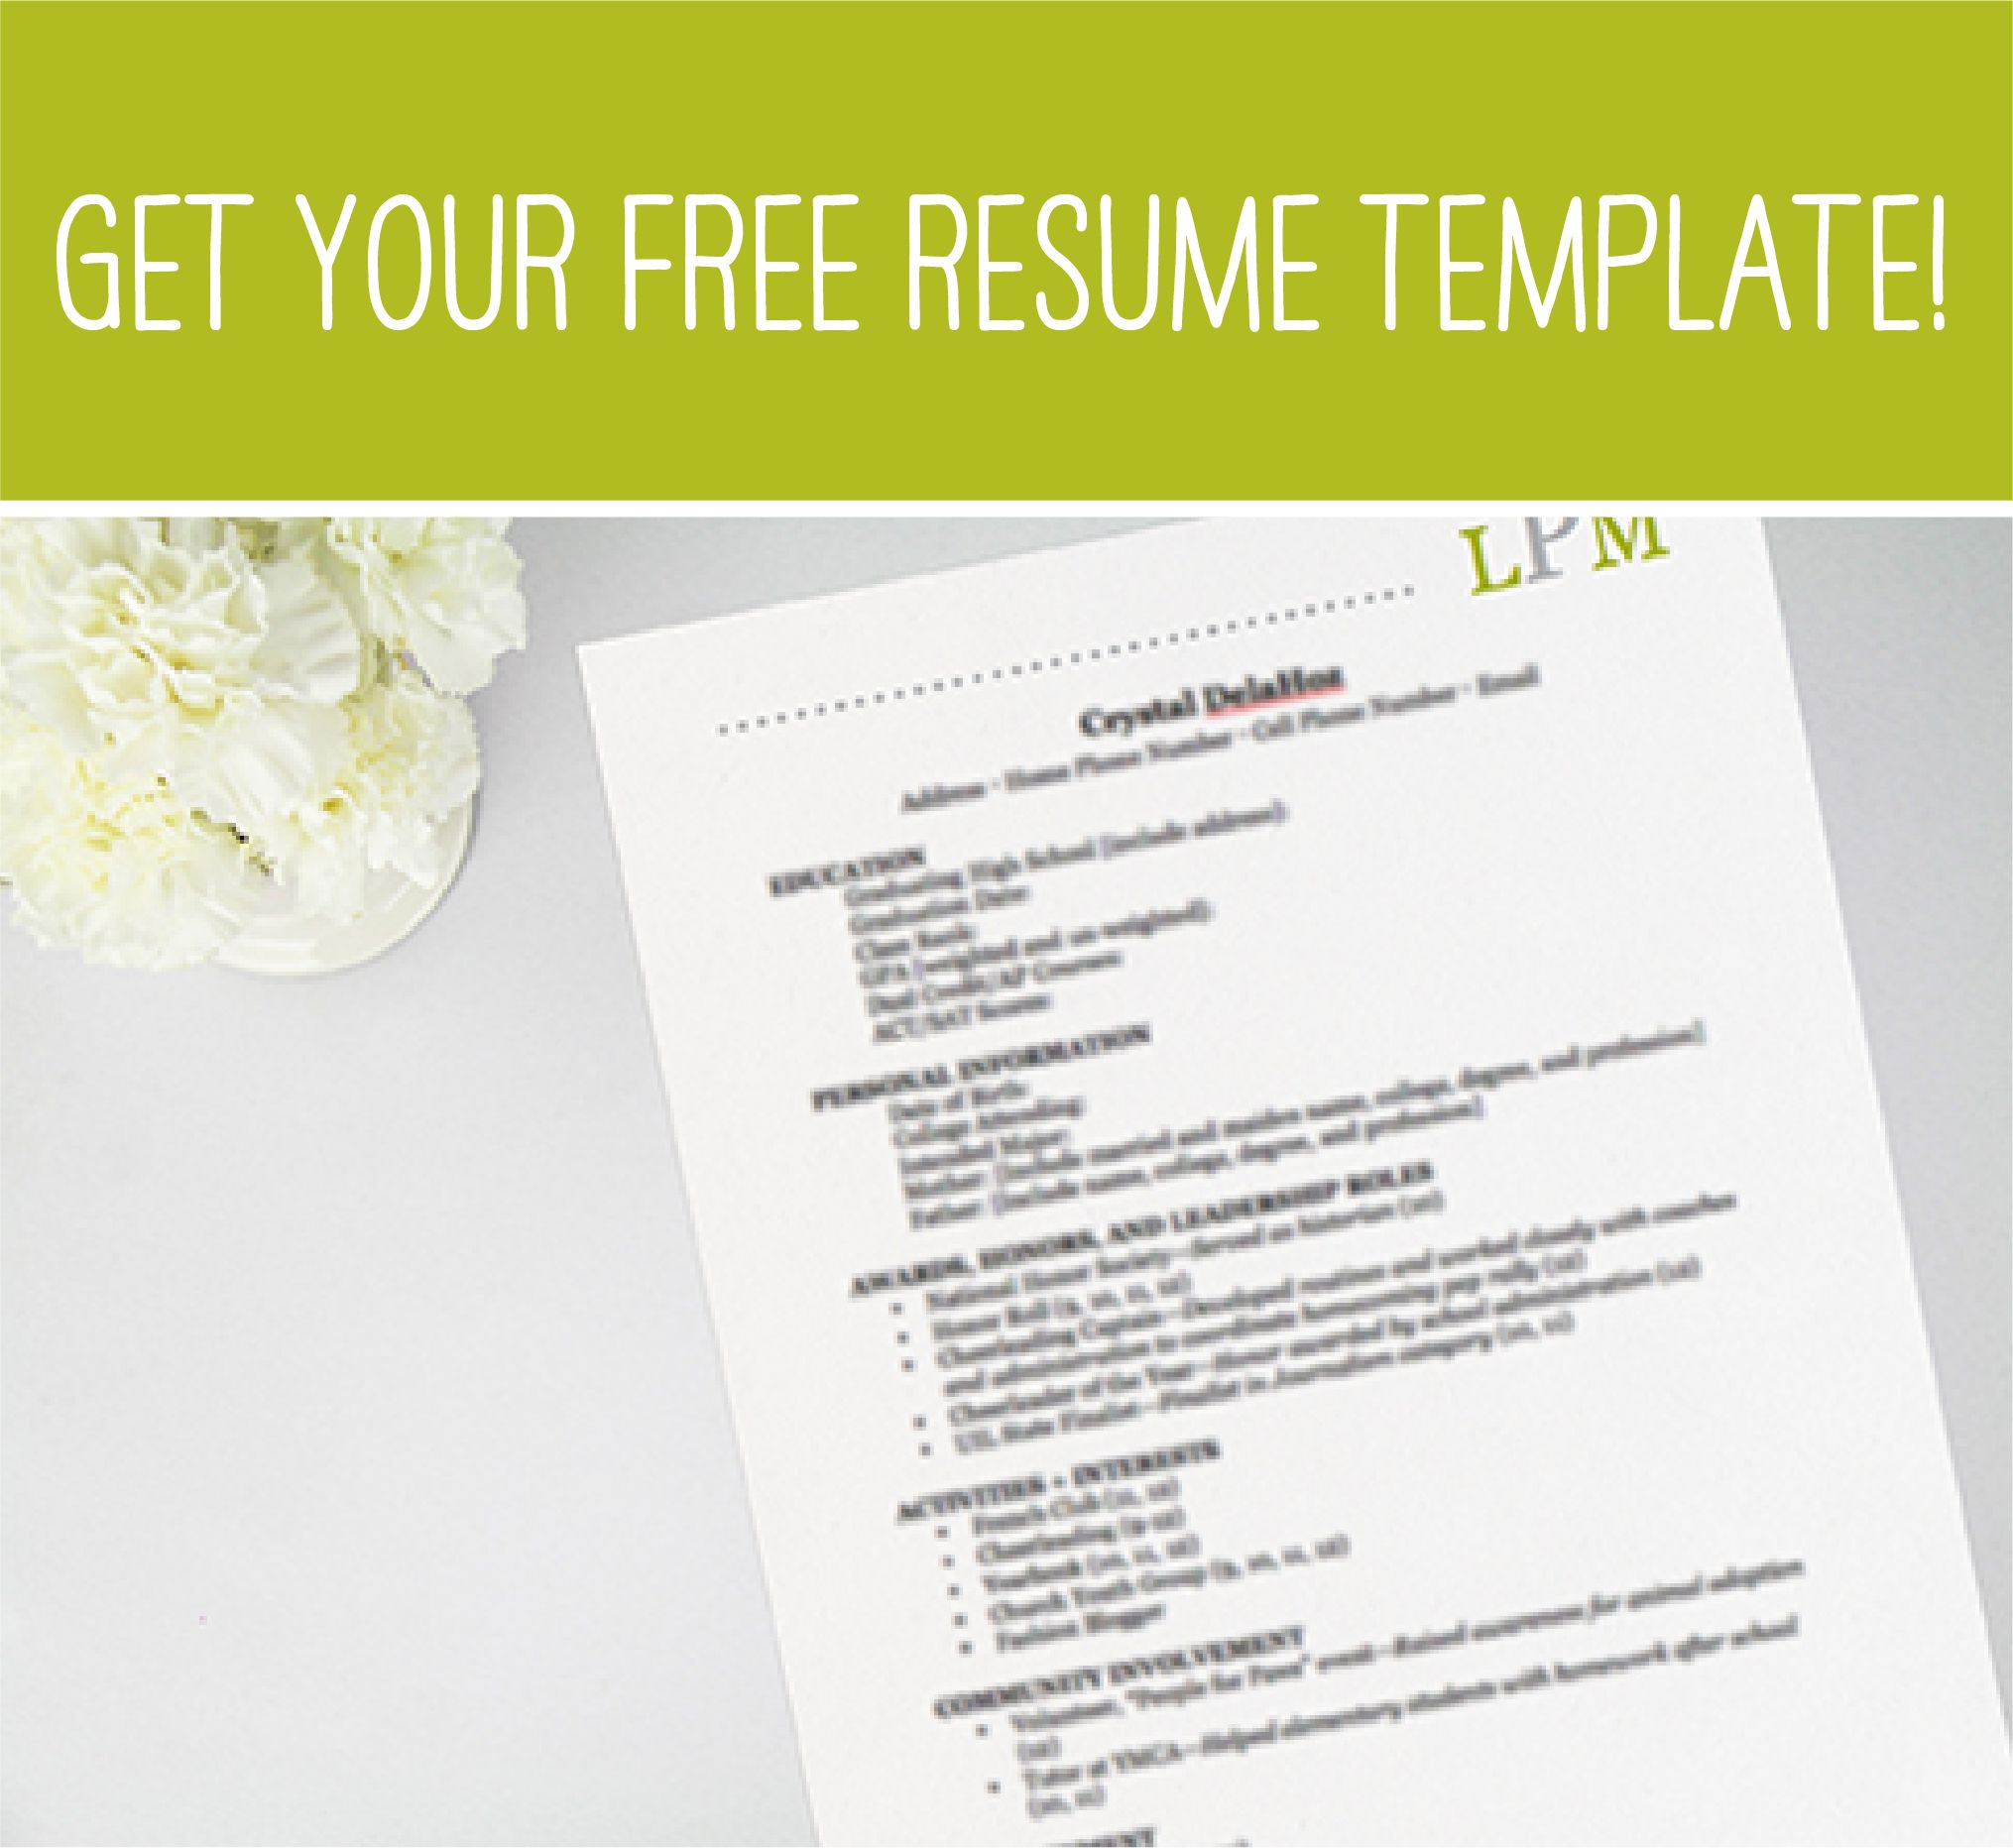 update in addition to totally free rsum cover letter templates i now offer completely custom recruitment information packets that are available for - Sorority Resume Template